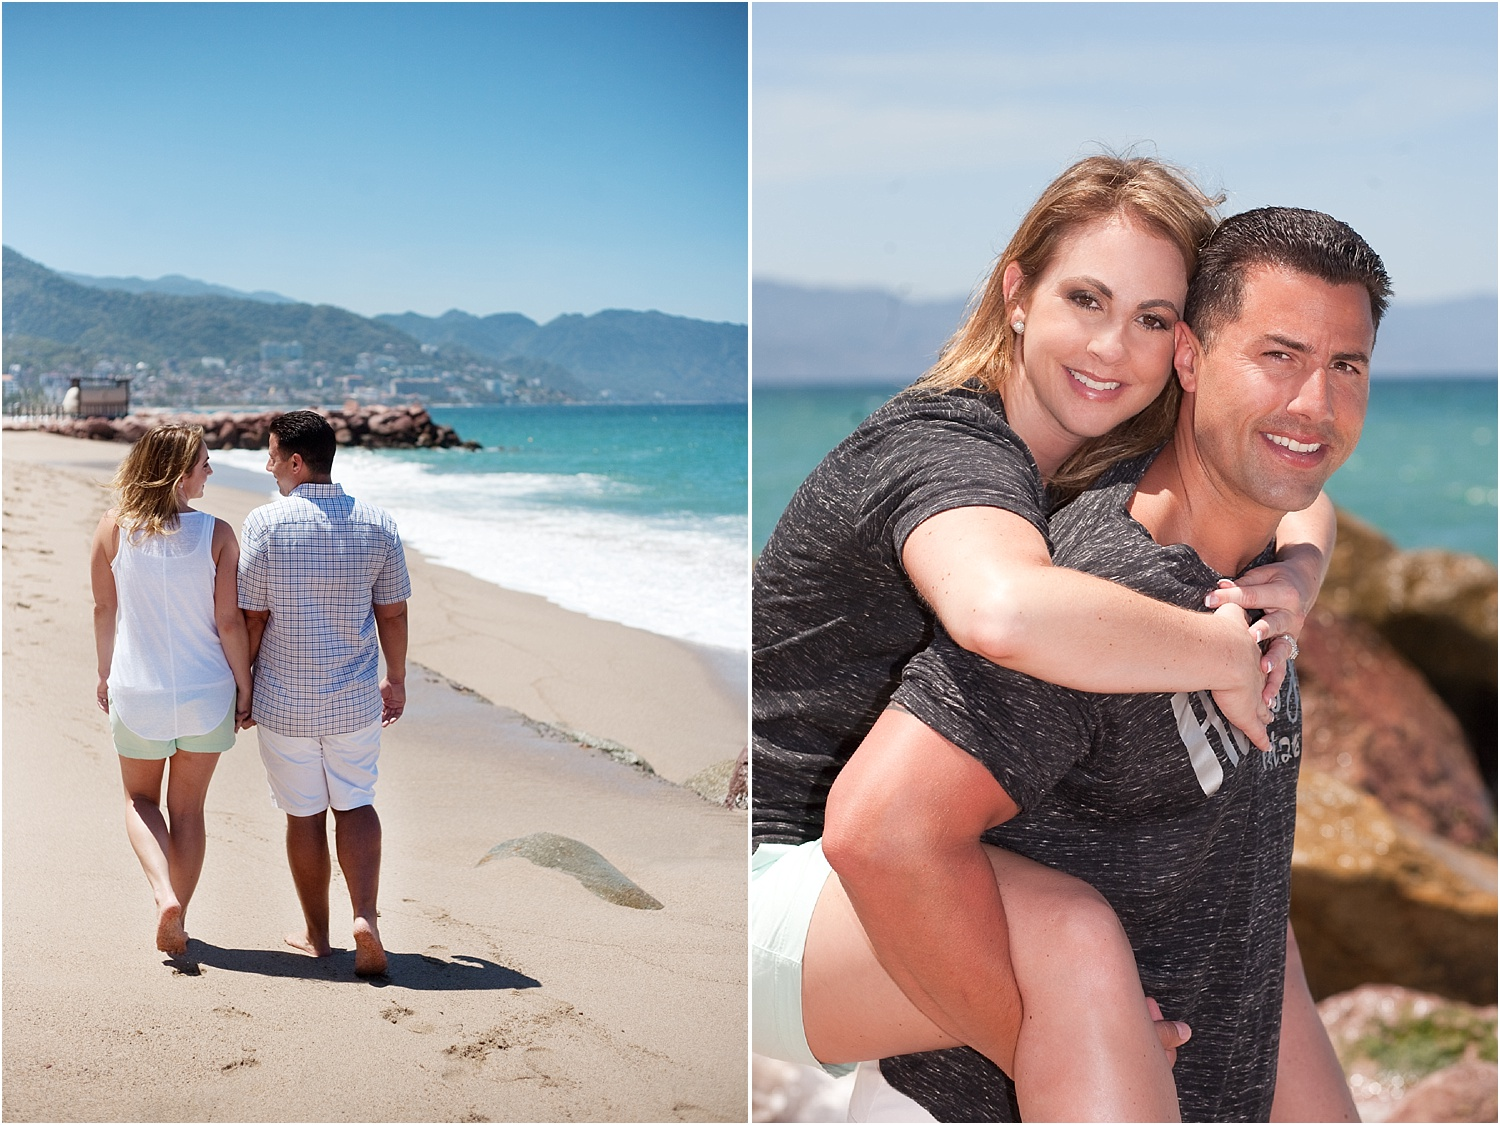 couple on the beach - How to do Portrait Photography in Bright Midday Sun